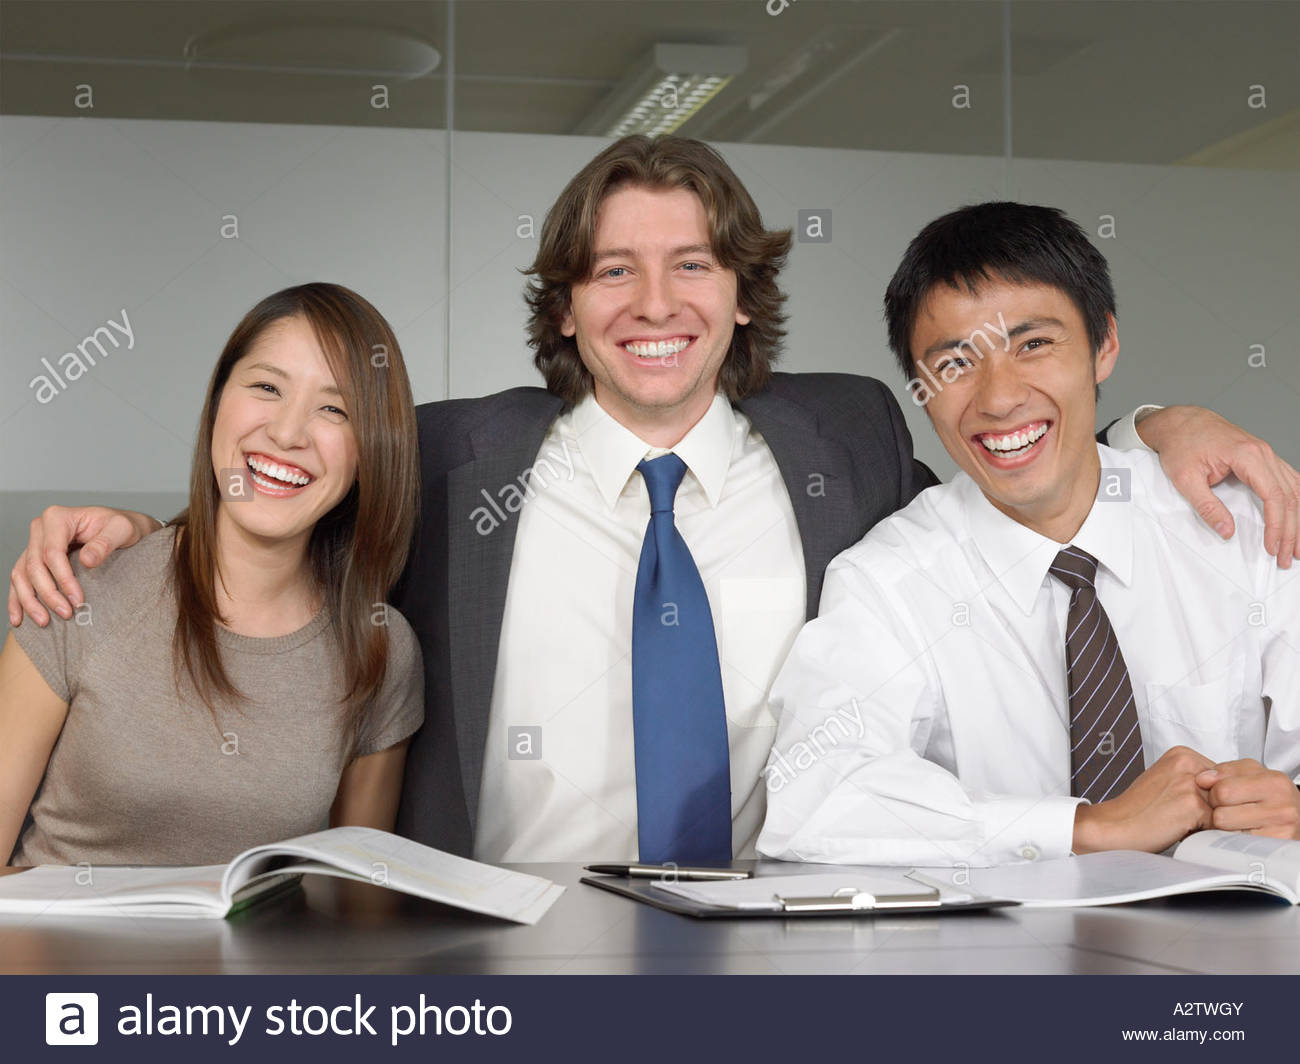 Office worker with arm around colleagues Stock Photo